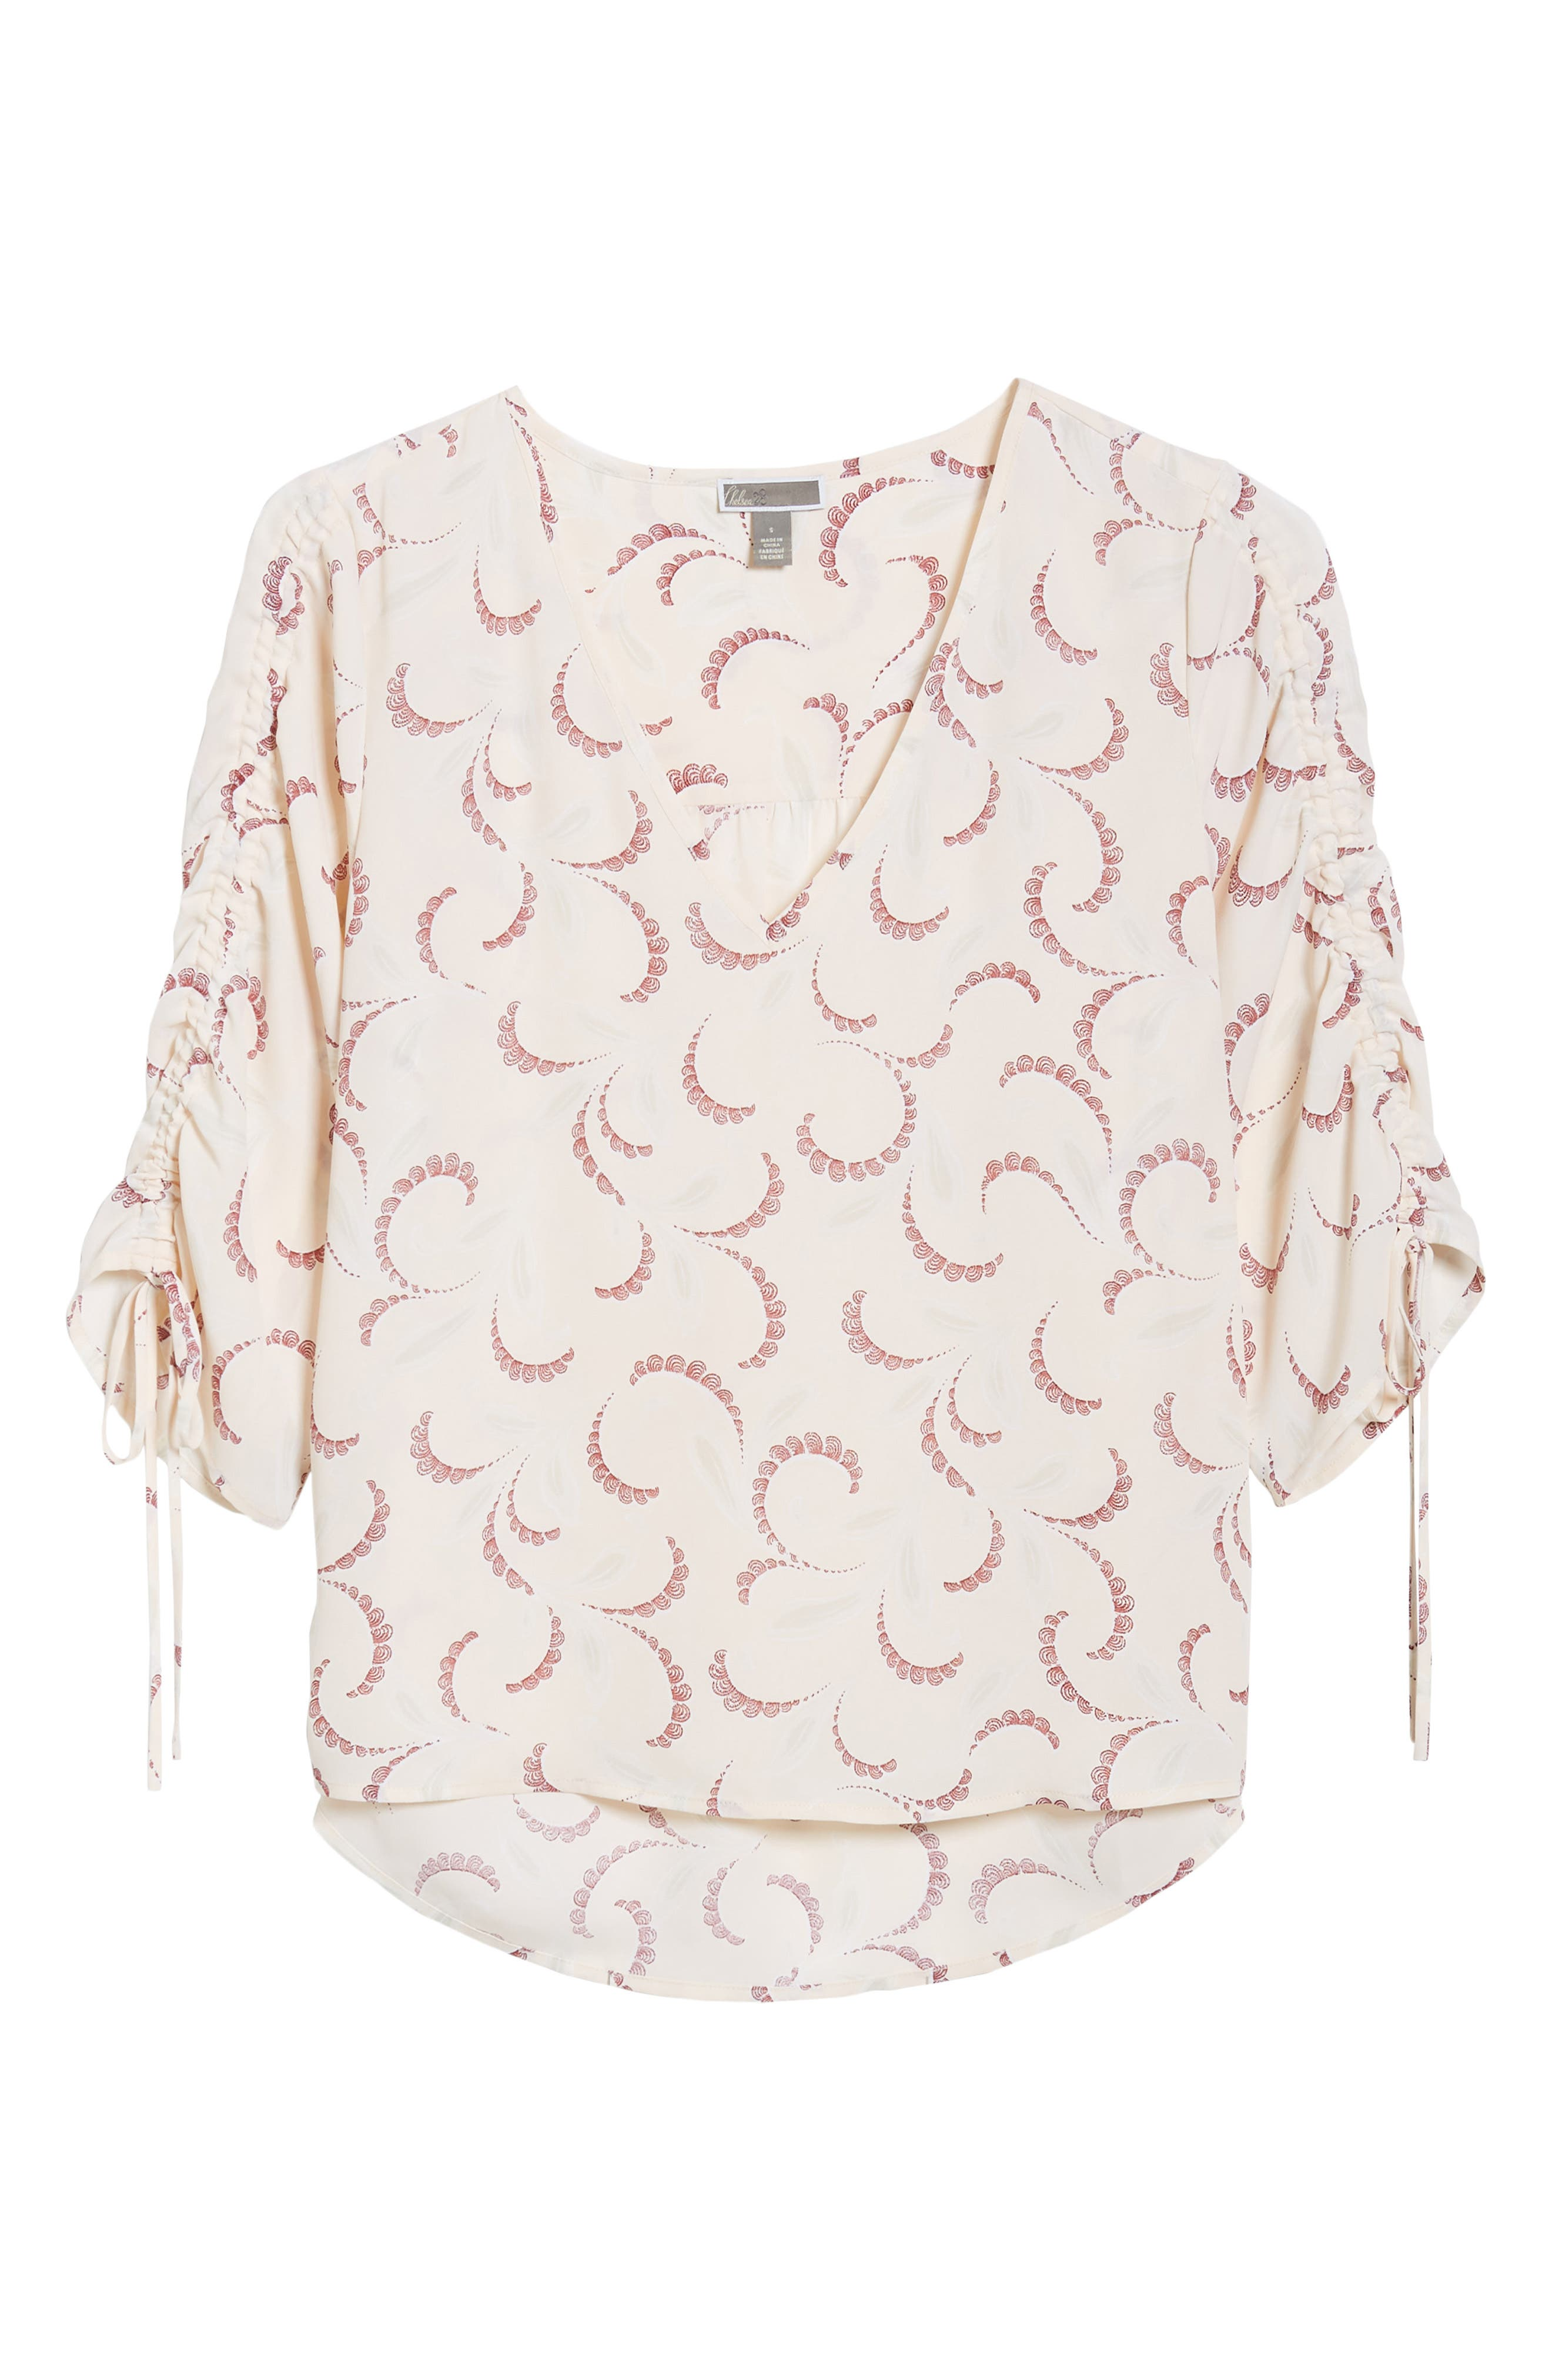 Print Ruched Sleeve Top,                             Alternate thumbnail 7, color,                             Pink Peony Bud Soft Swirls